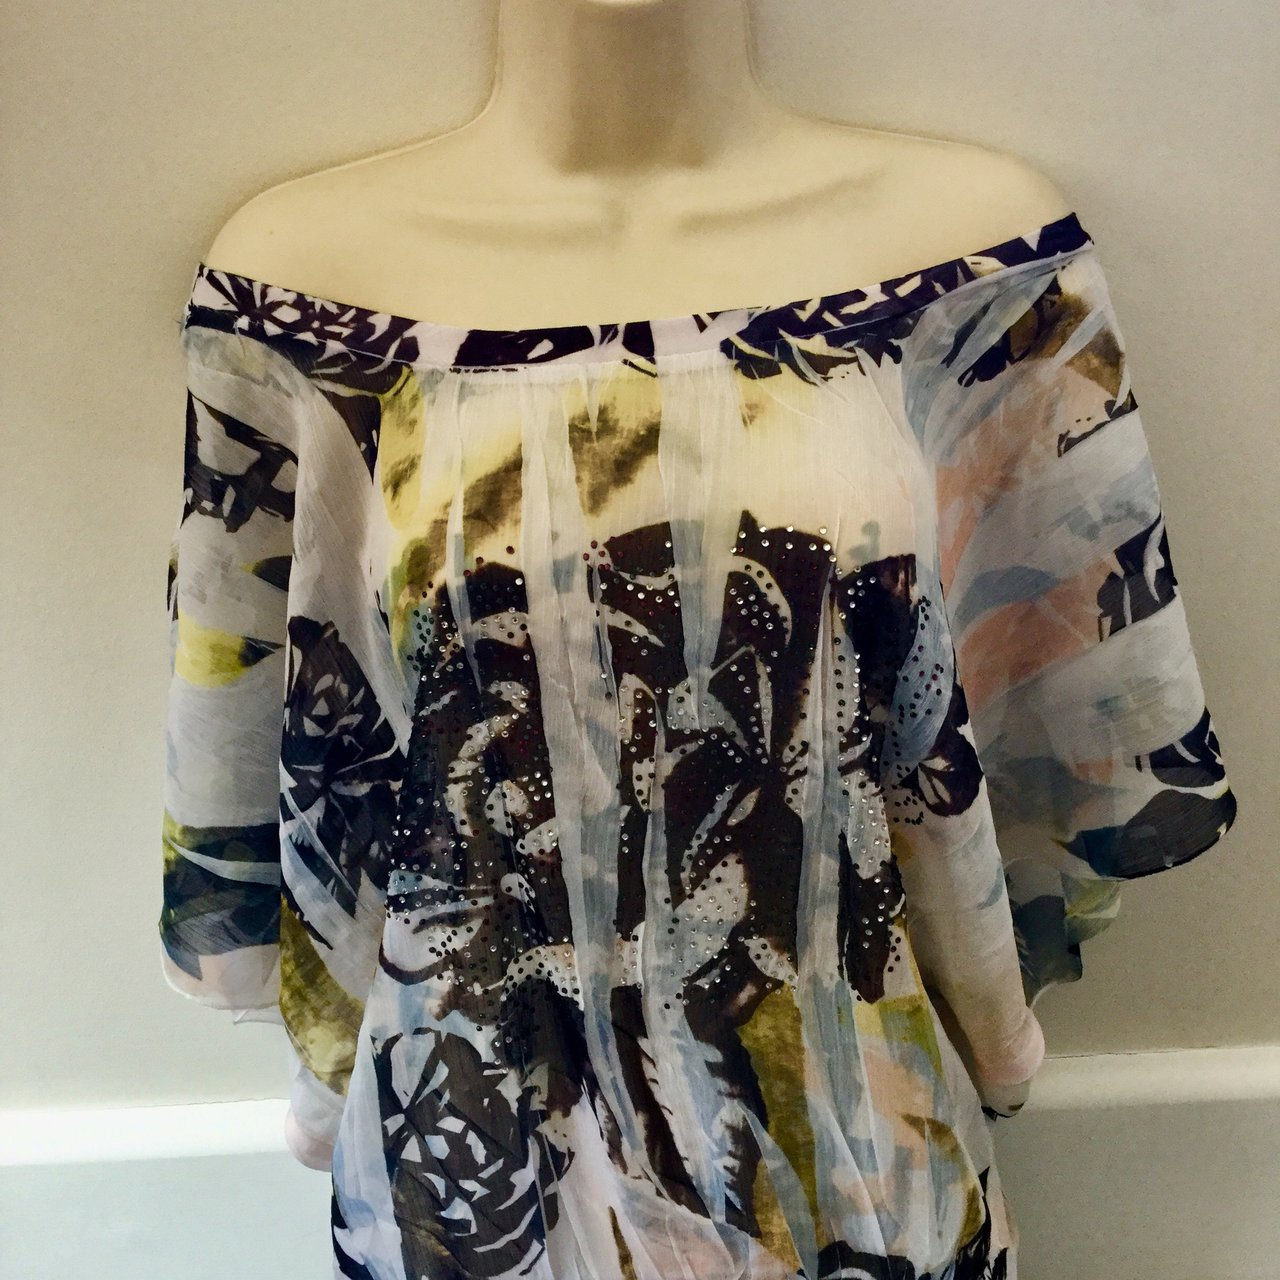 301c53344a Jane Norman butterfly sheer top